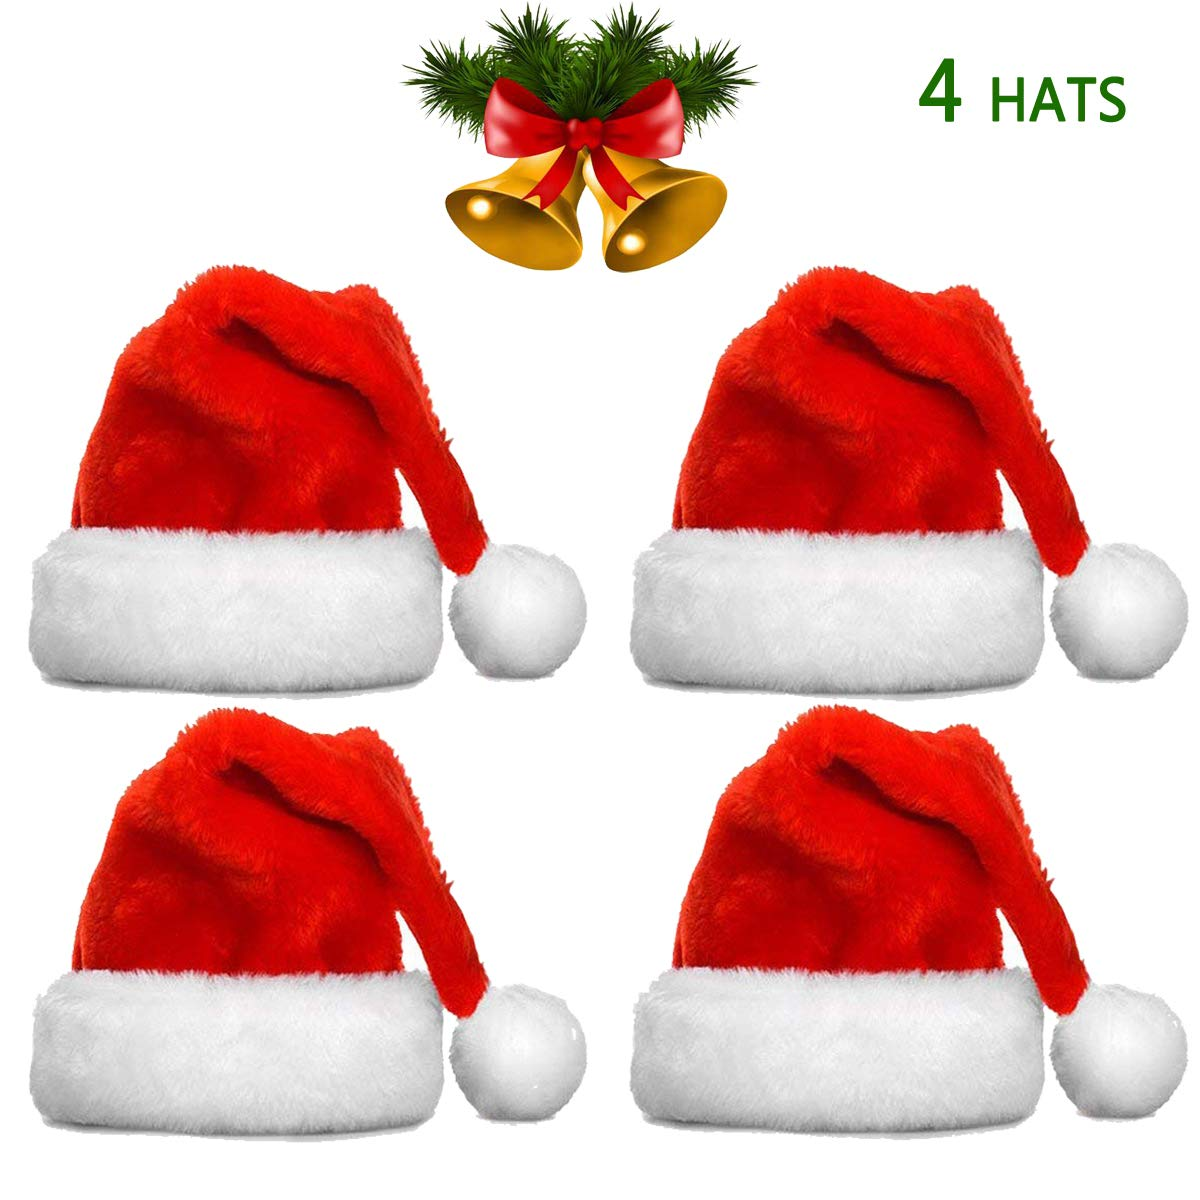 Christmas Hats Bulk Santa Hats- Christmas Costume Classic Hat -Christmas Hats for Women/Men/Kids/Adult (4 Pack Christmas Hats) by BODE Y.W